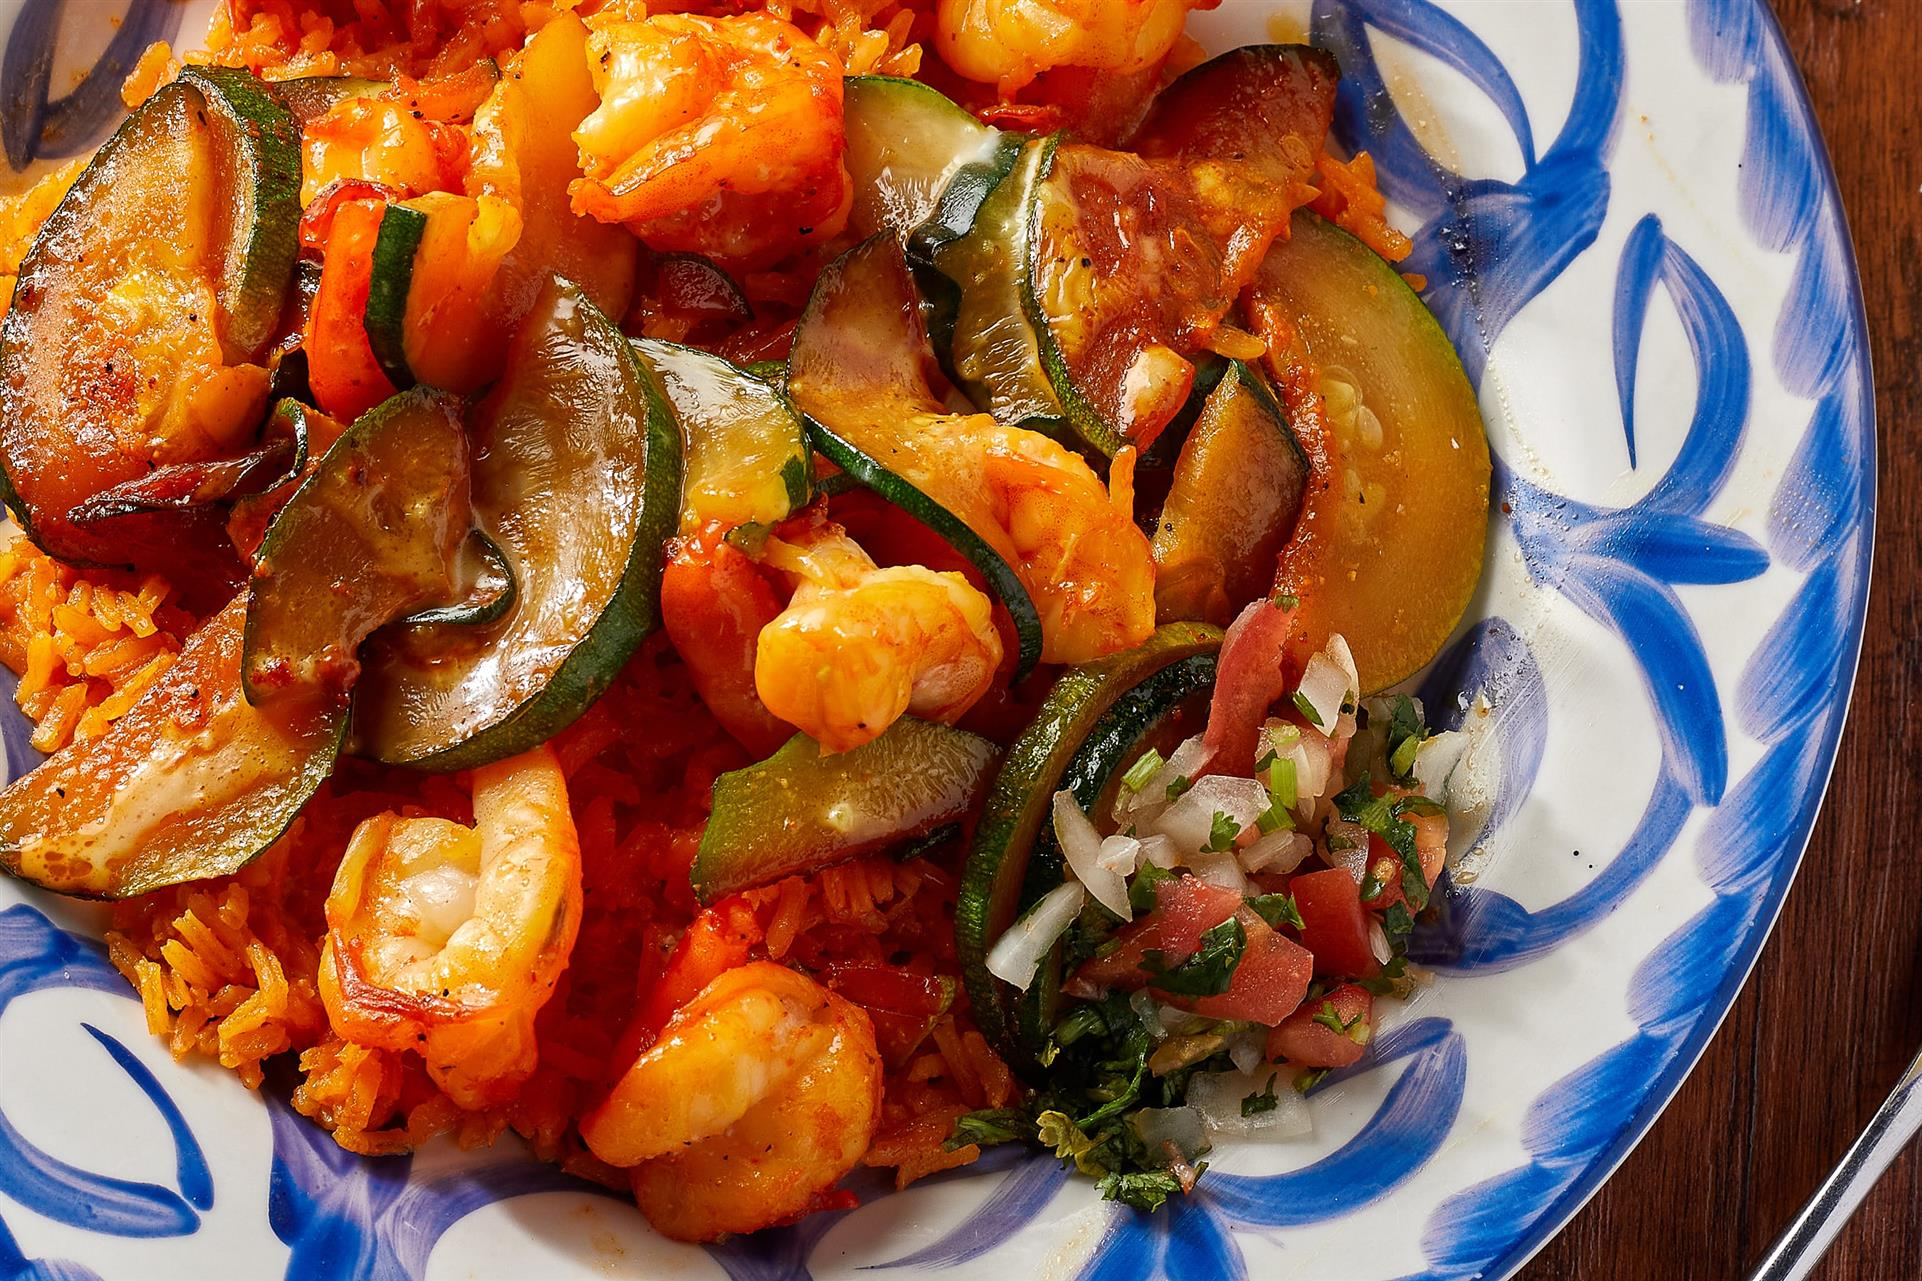 grilled shrimp and vegetables over spanish rice with pico de gallo